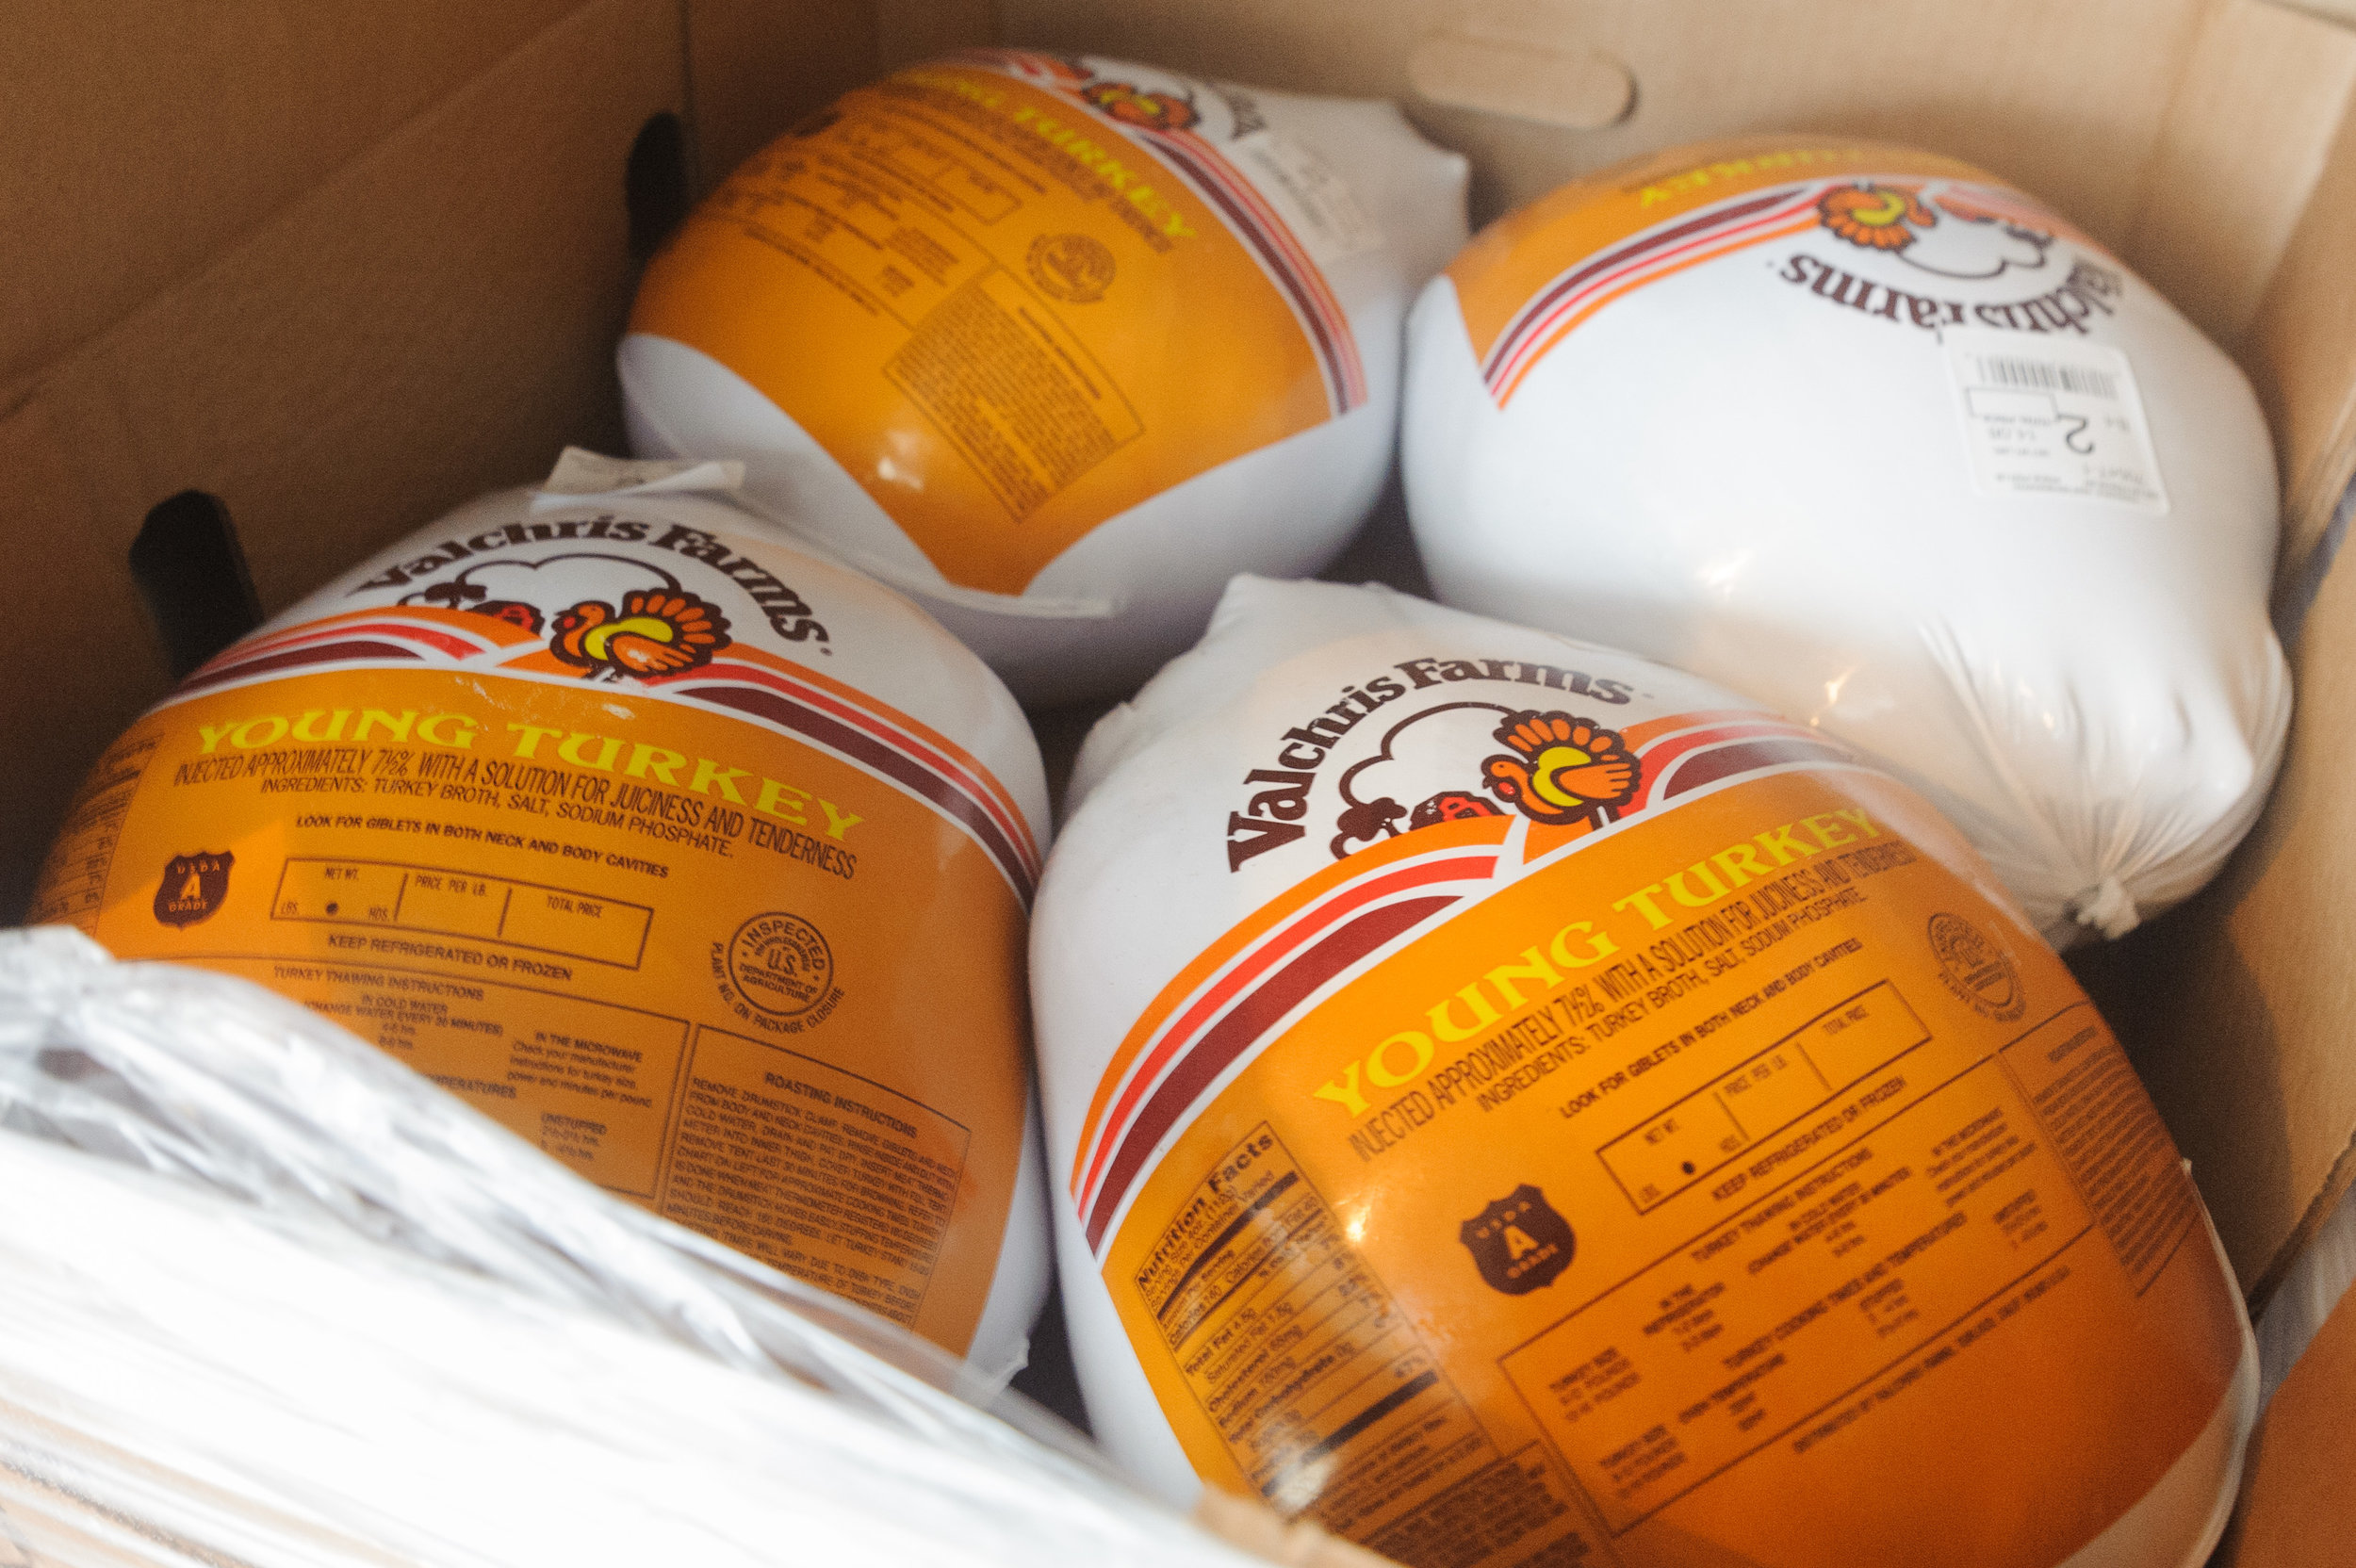 A box of frozen turkeys sits in the freezer of the Westside Food Bank's warehouse. Seasonal food items such as turkey are high demand during Thanksgiving time of the year. Westside Food Bank, Santa Monica Calif.. November 9, 2017. (Photo by: Justin Han/Corsair Staff)